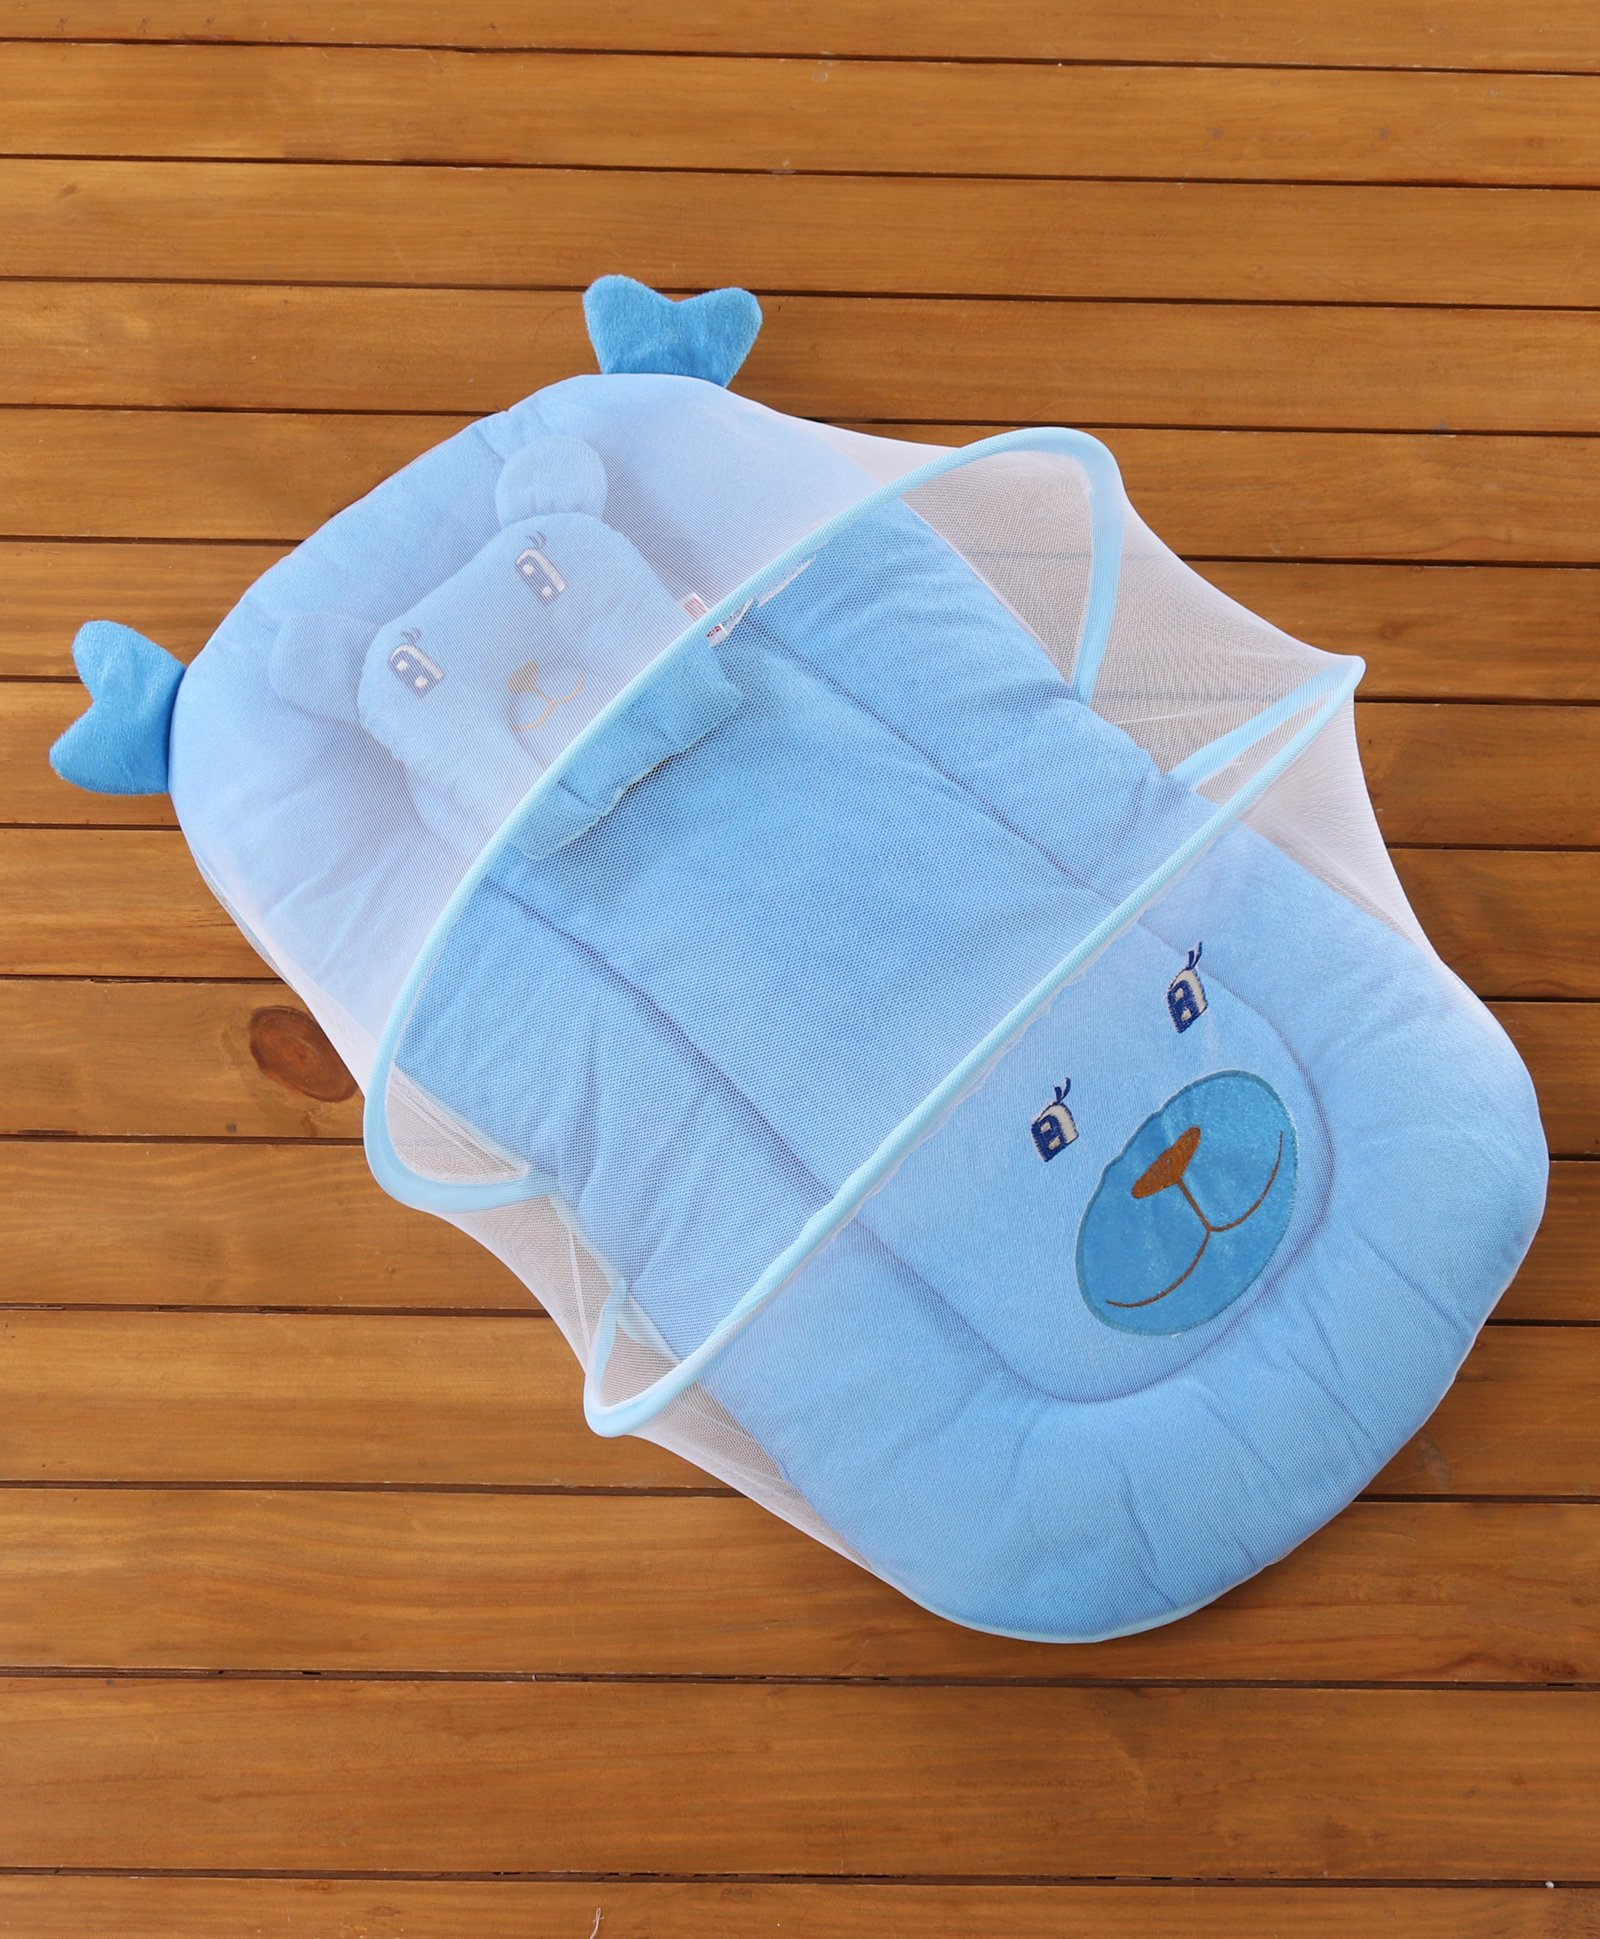 Baby bed net - Product Image Product Image